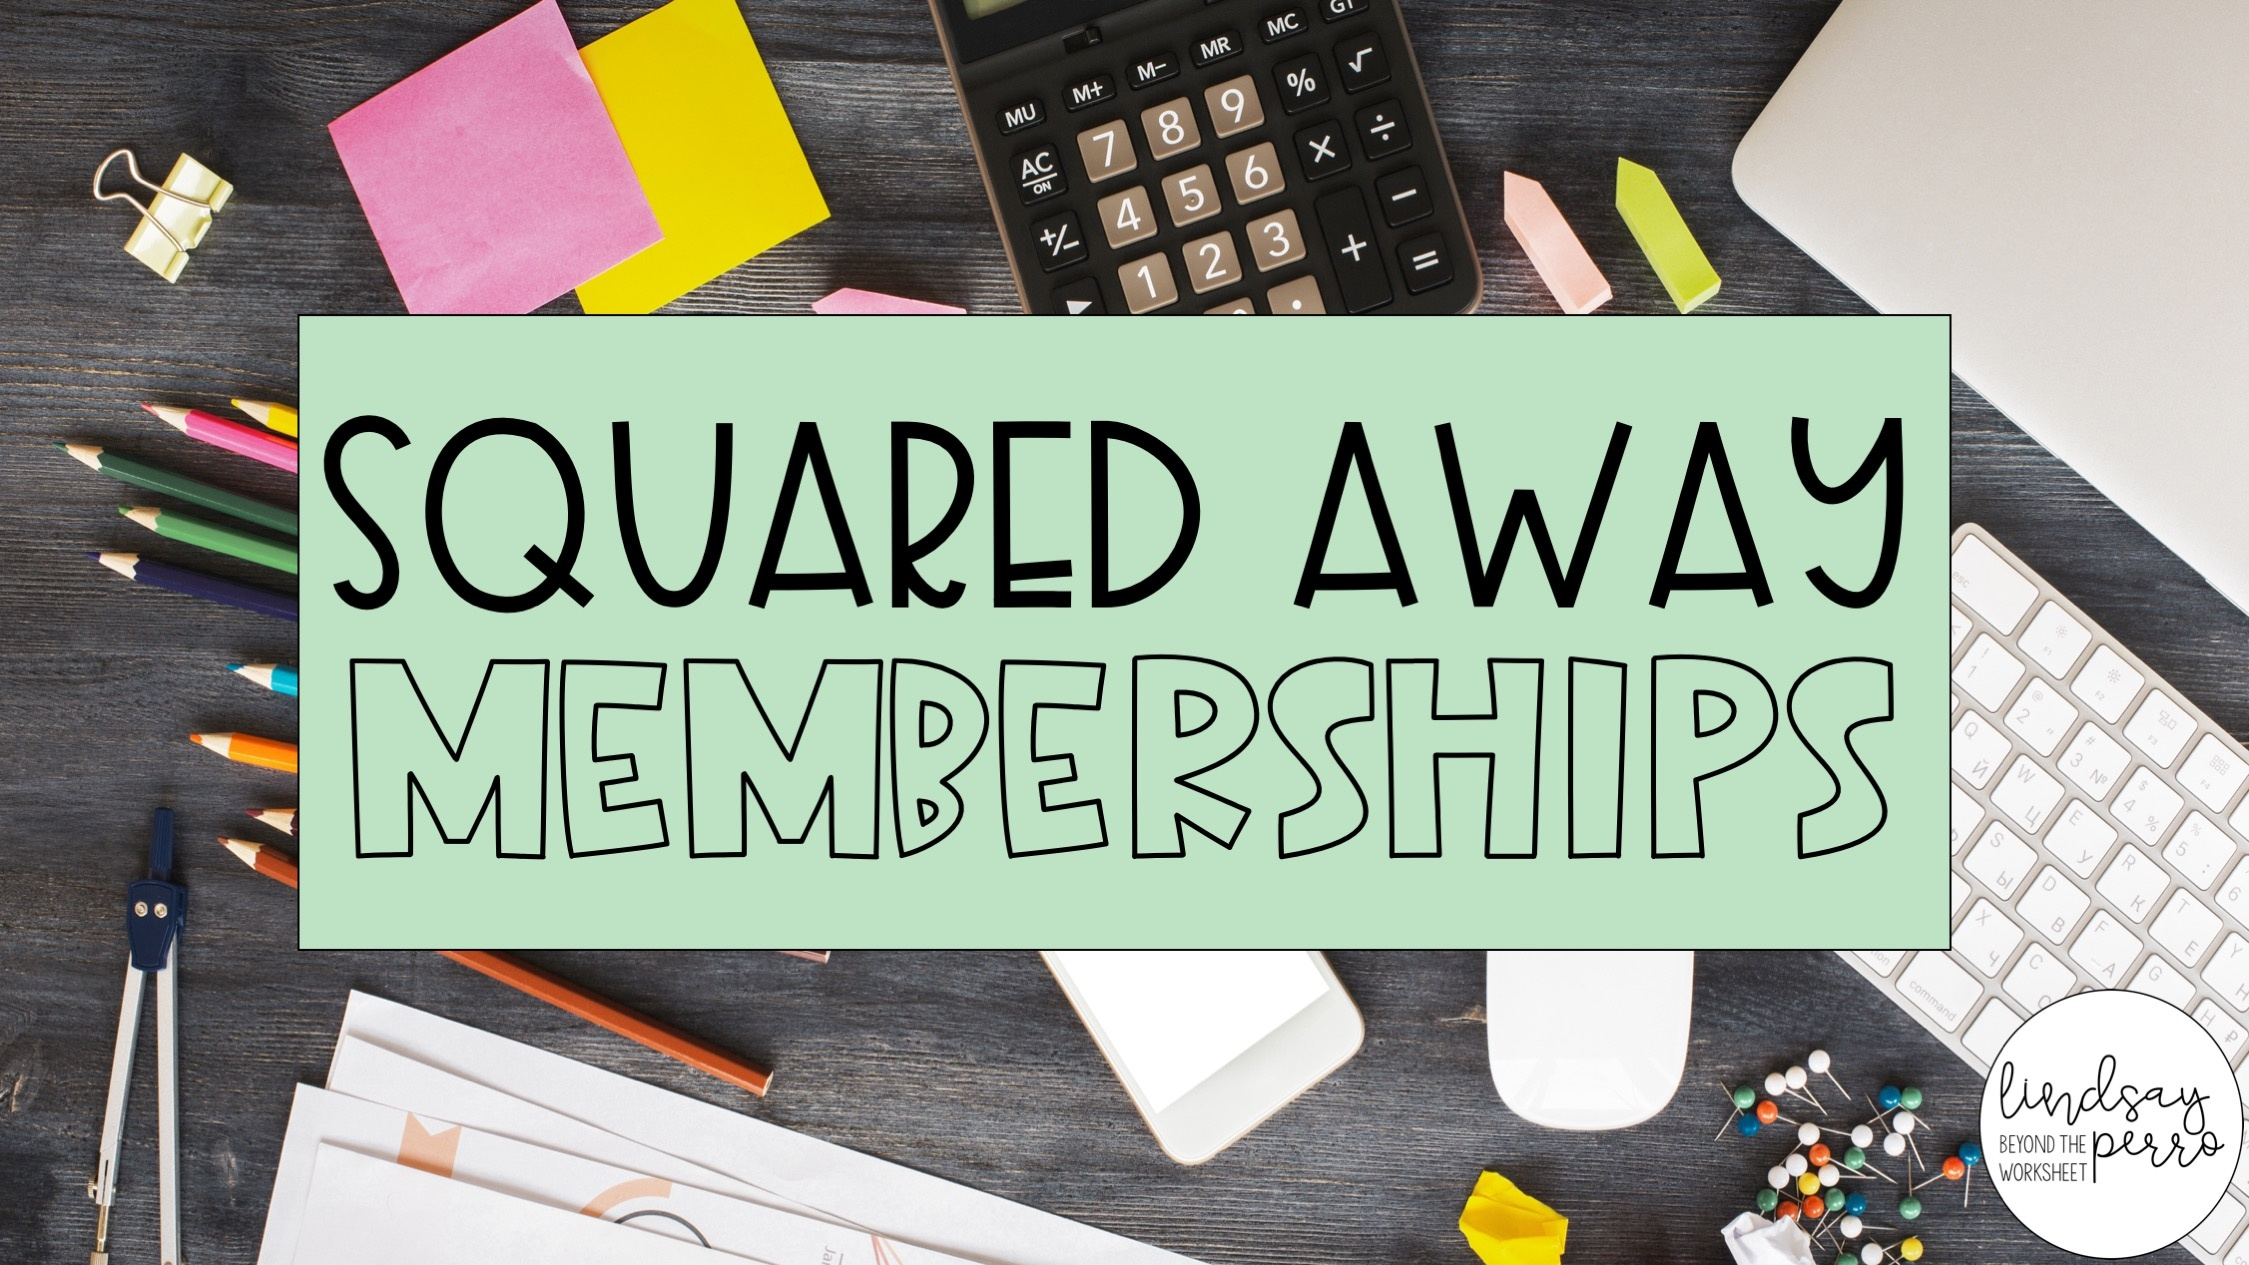 Squared Away Memberships